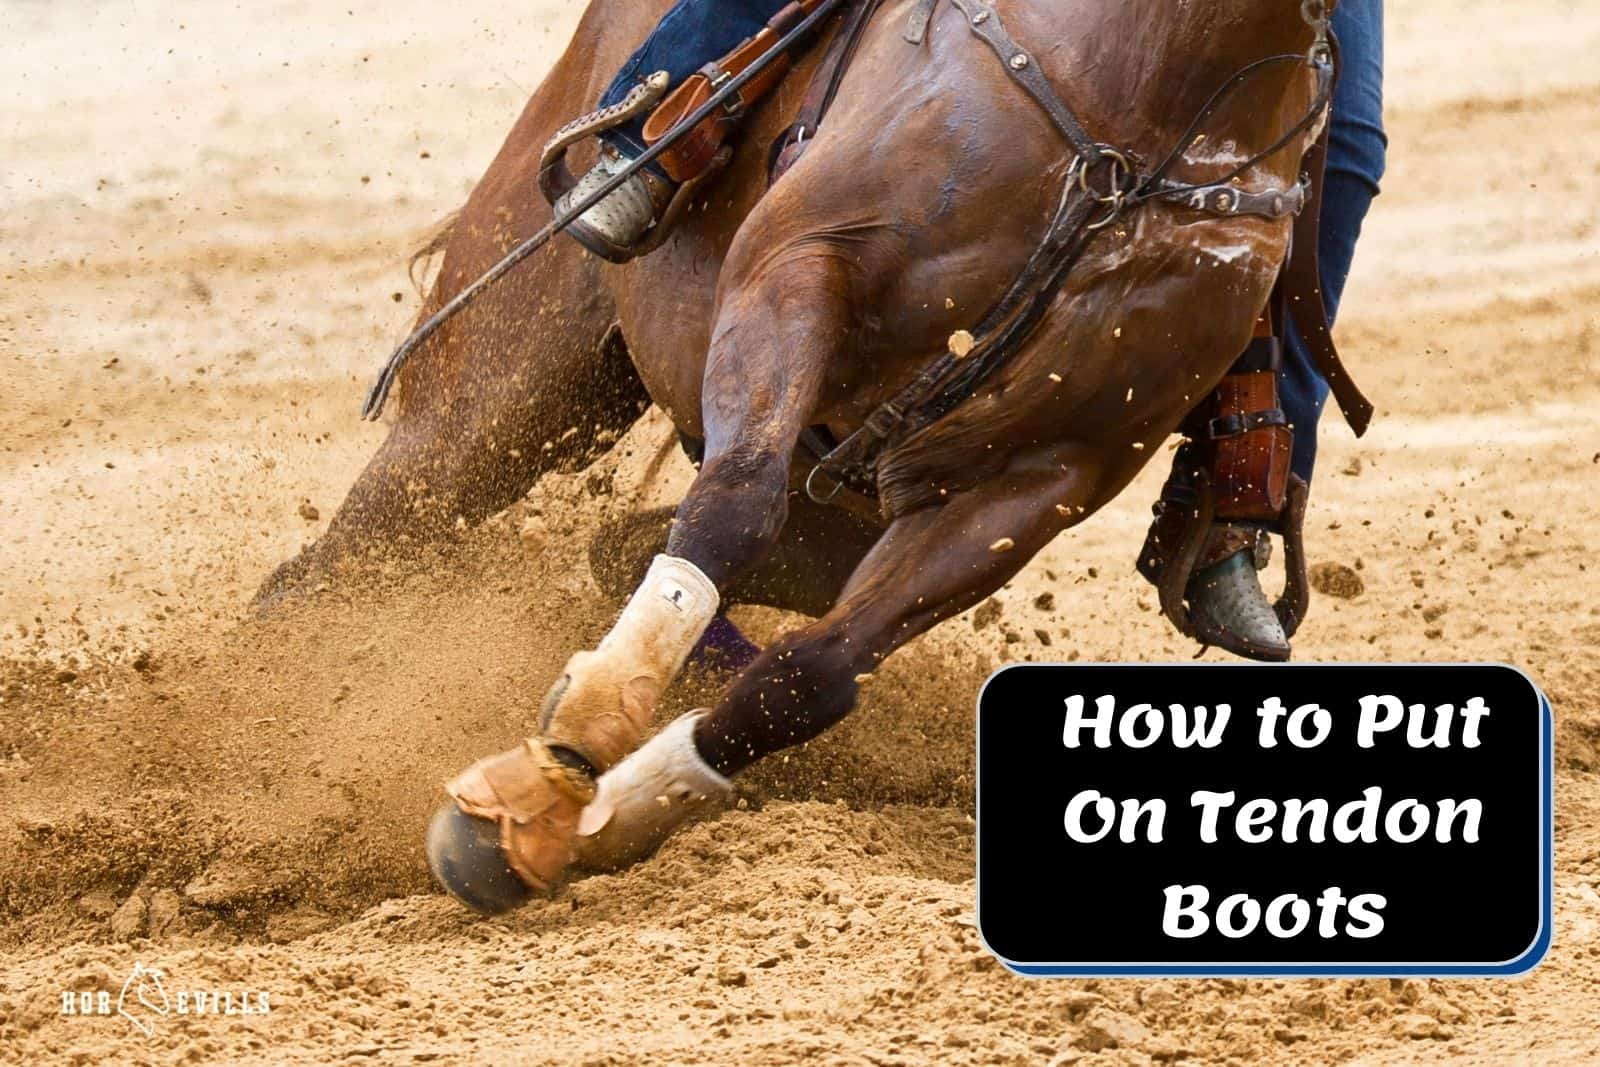 horse racing with white tendon boots but how to put on tendon boots correctly?